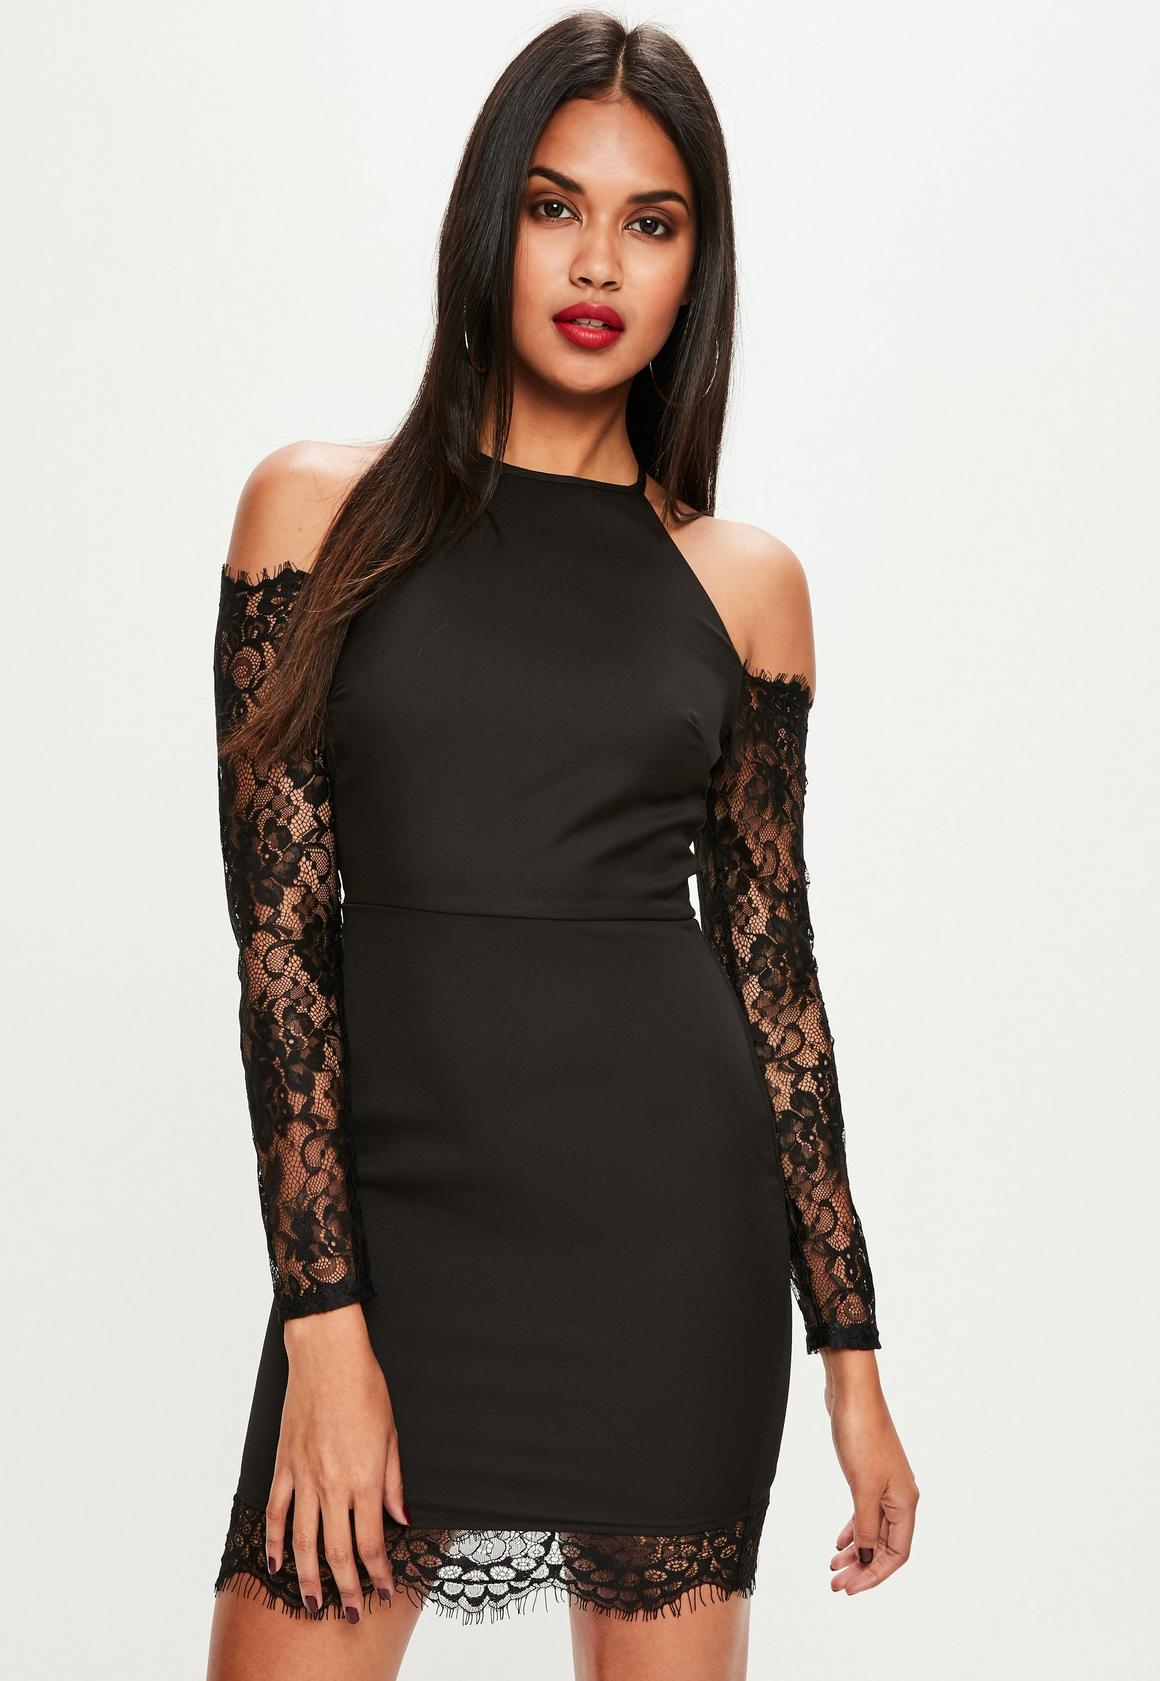 Black dress lace sleeves - Black Crepe And Lace Sleeve Bodycon Dress